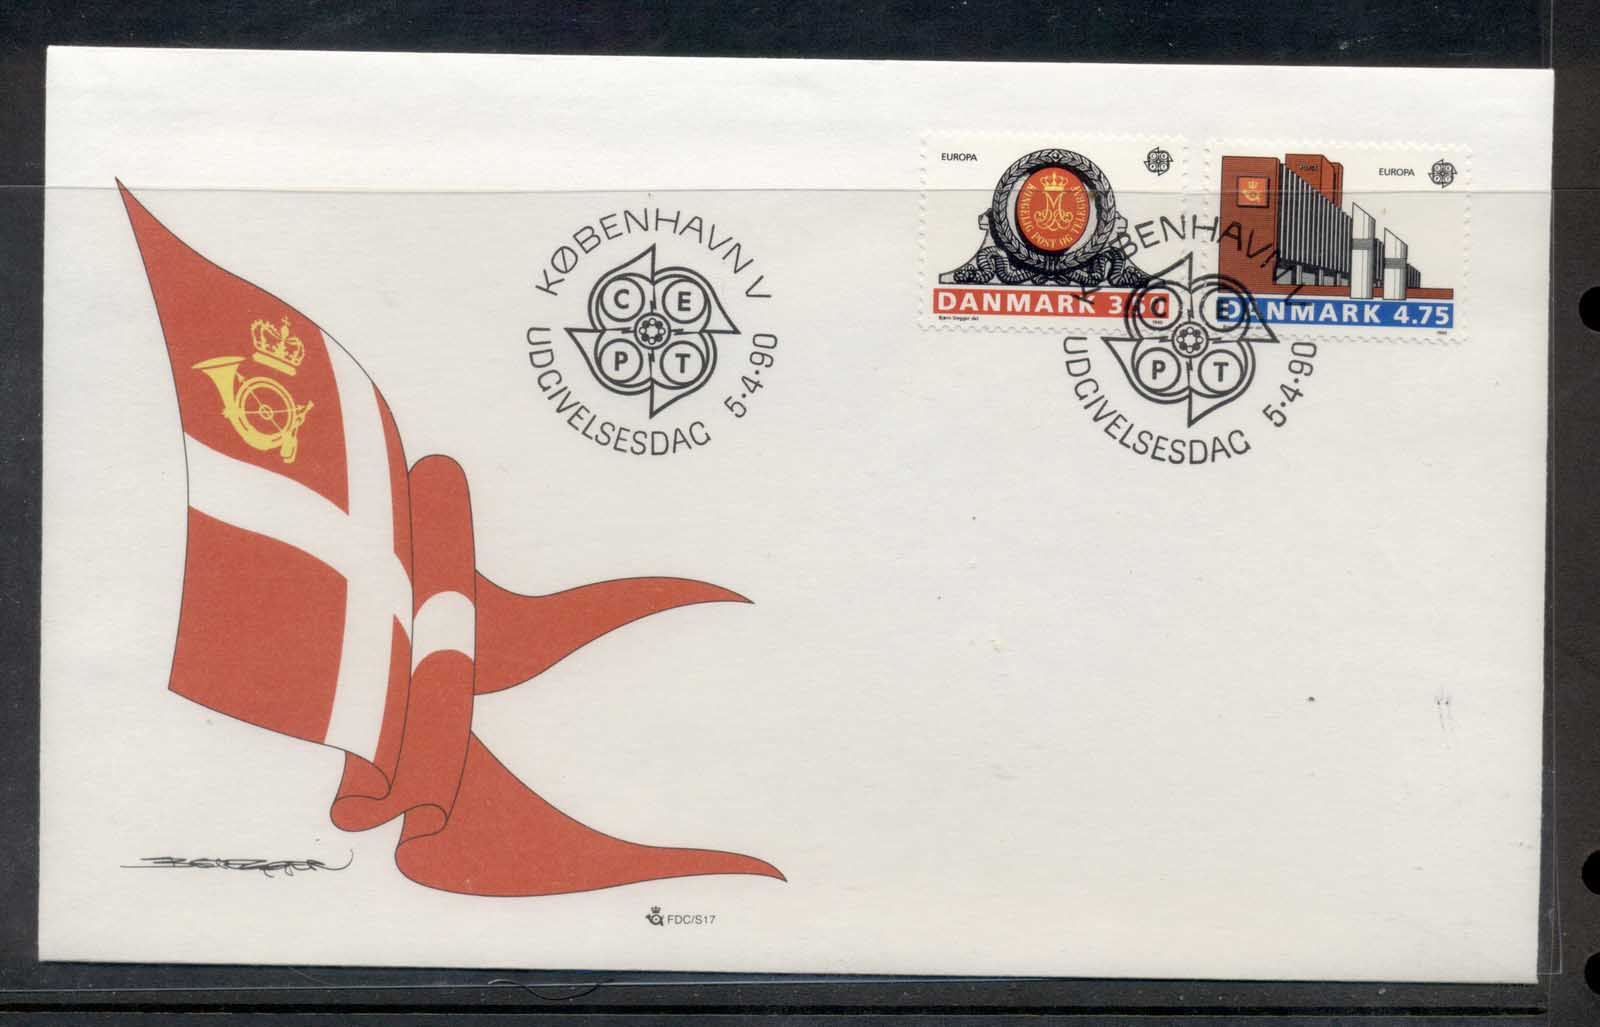 Denmark 1990 Europa Post Offices FDC